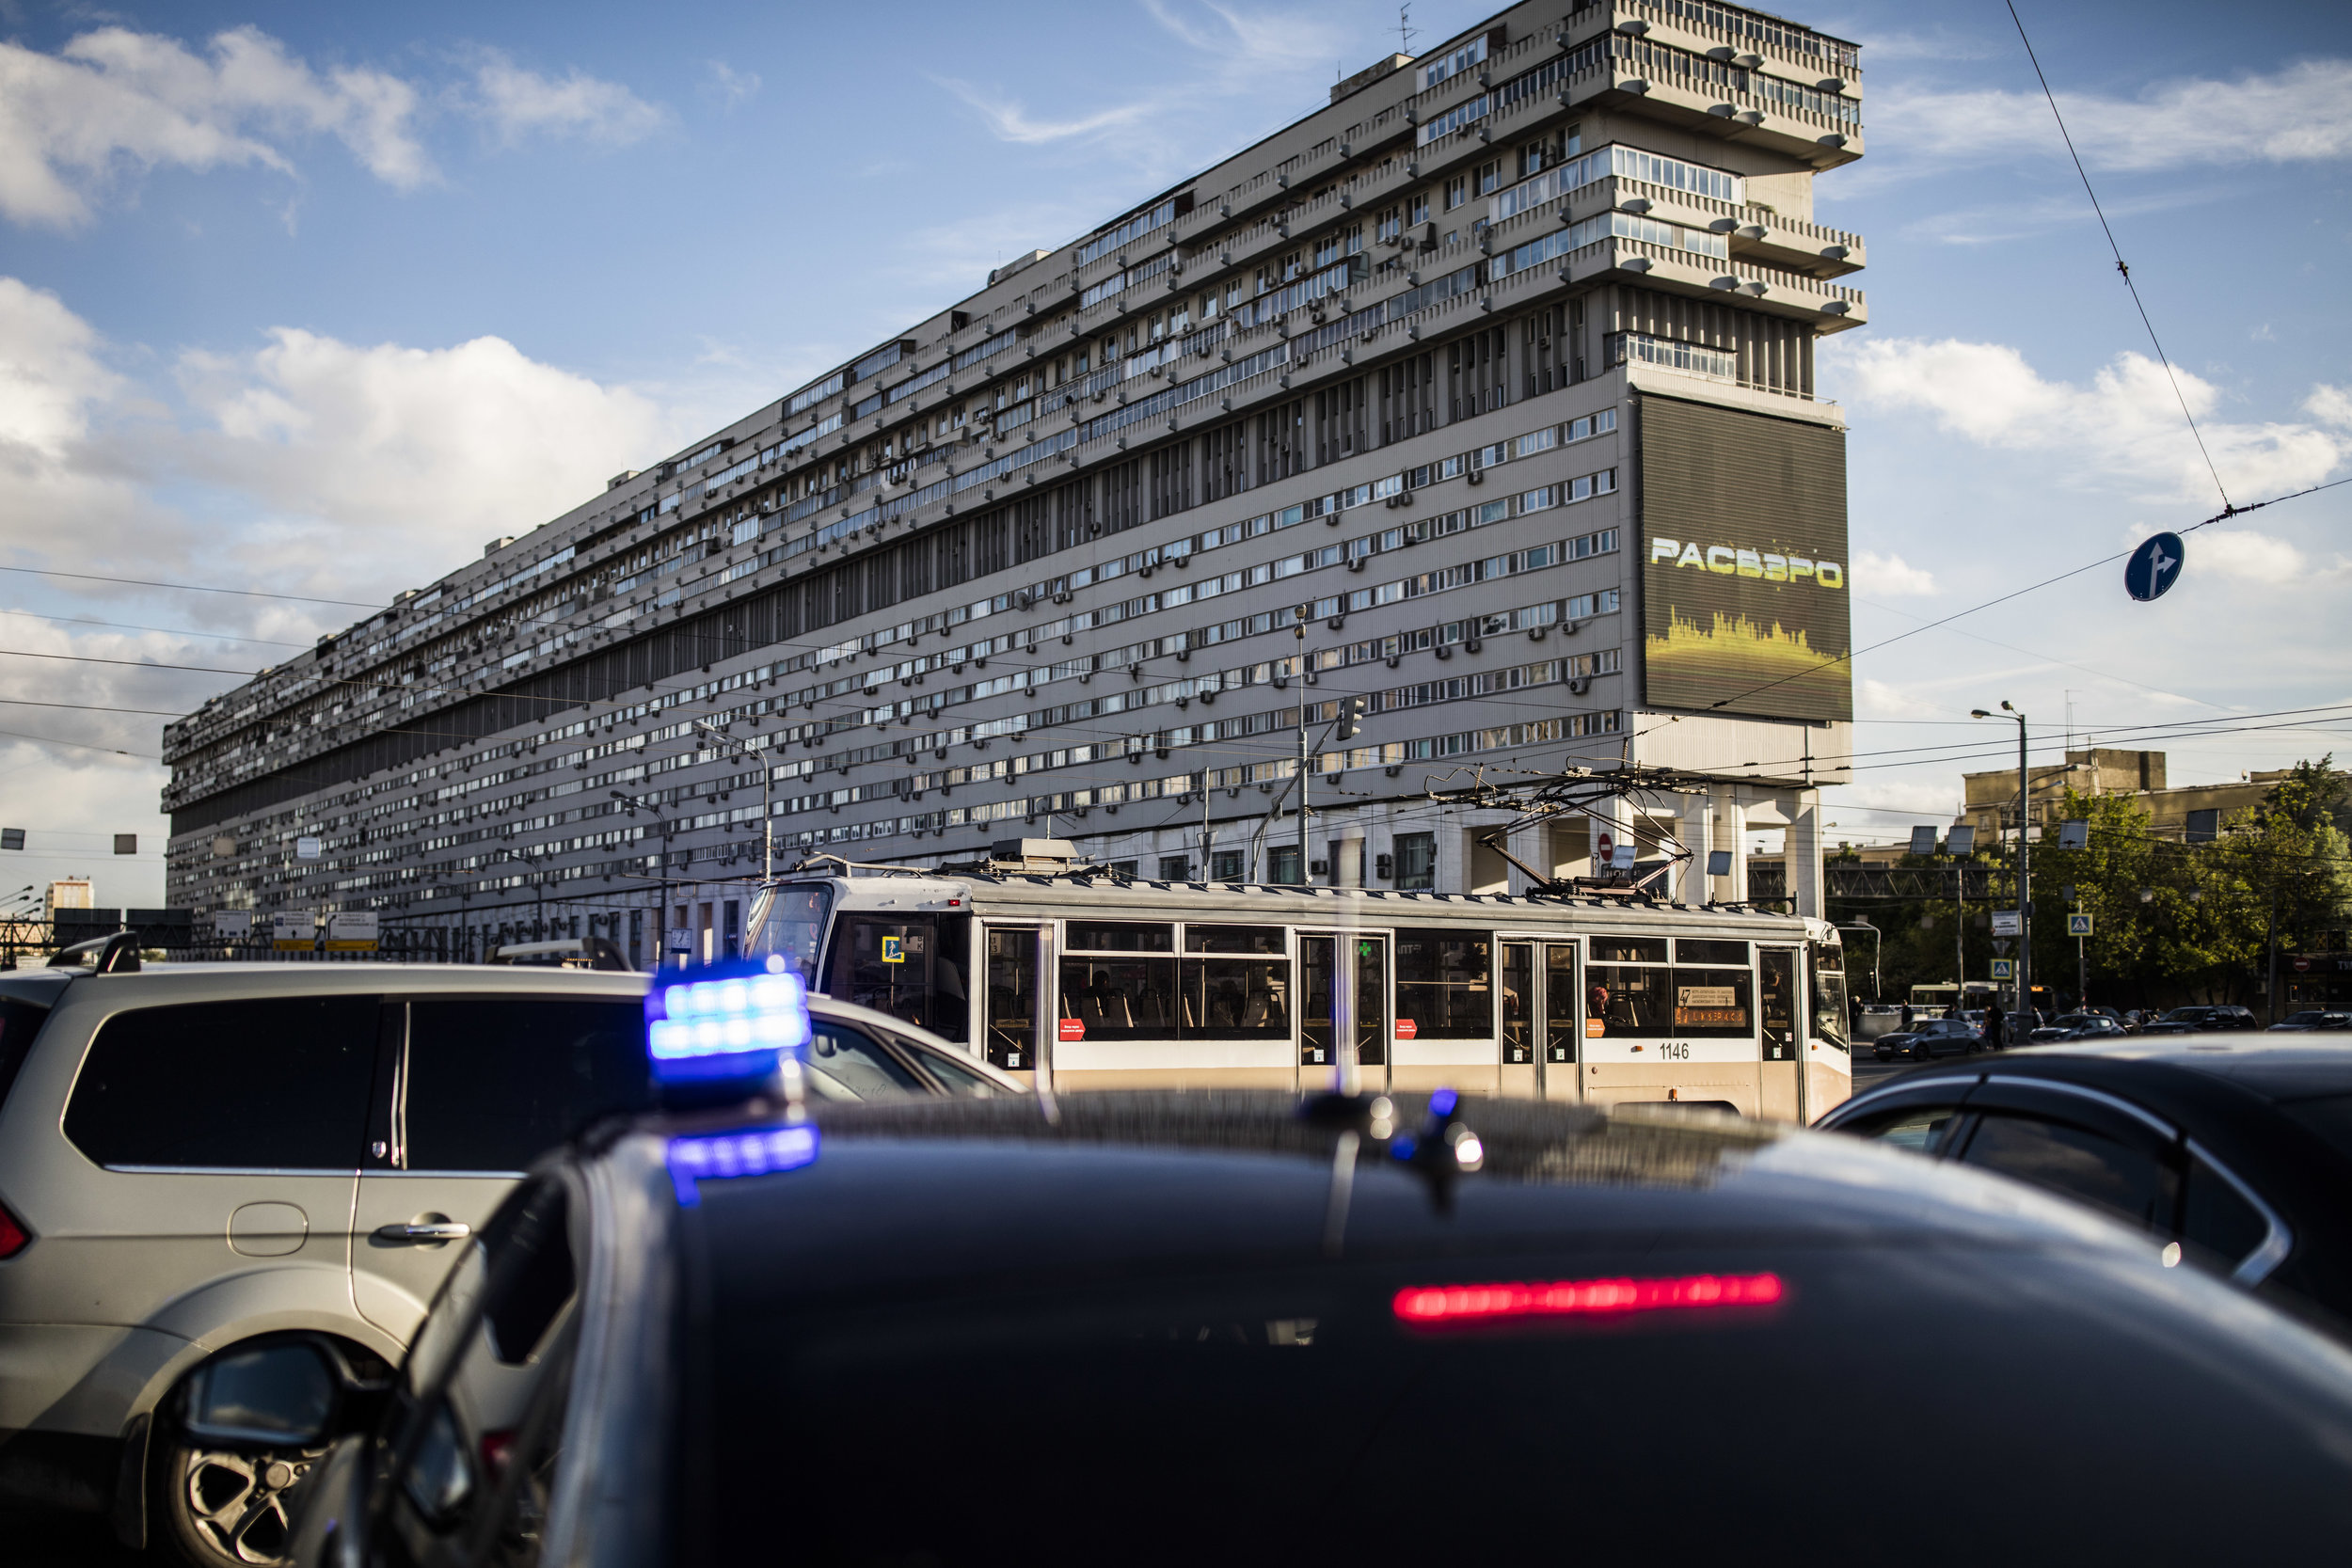 'Ship-house', a legendary half-a-kilometer-long brutalist apartment building that was used to accomodate scientists working on nuclear energy programs, is now completely changed and somewhat damaged by capitalism.